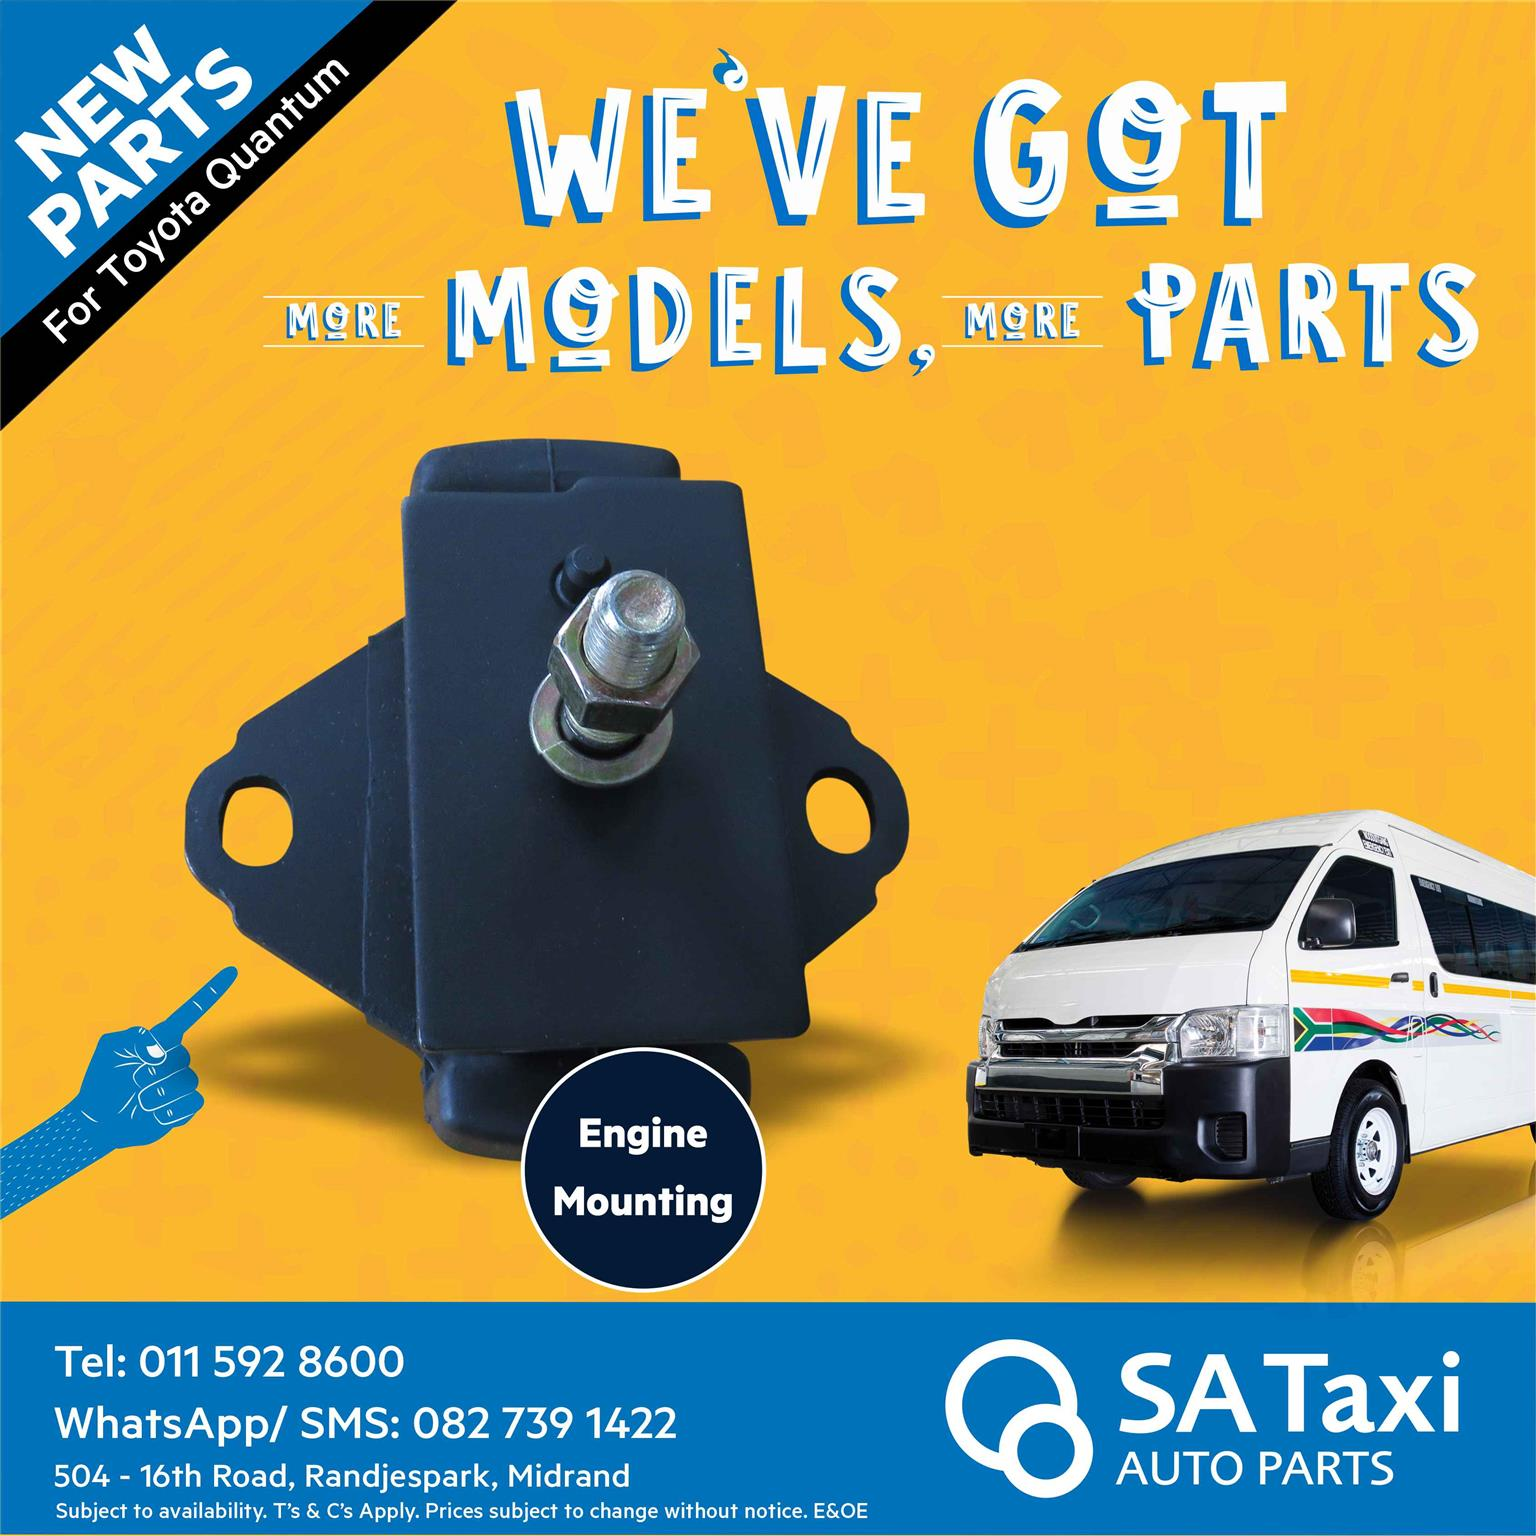 NEW Engine Mounting suitable for Toyota Quantum - SA Taxi Auto Parts quality spares